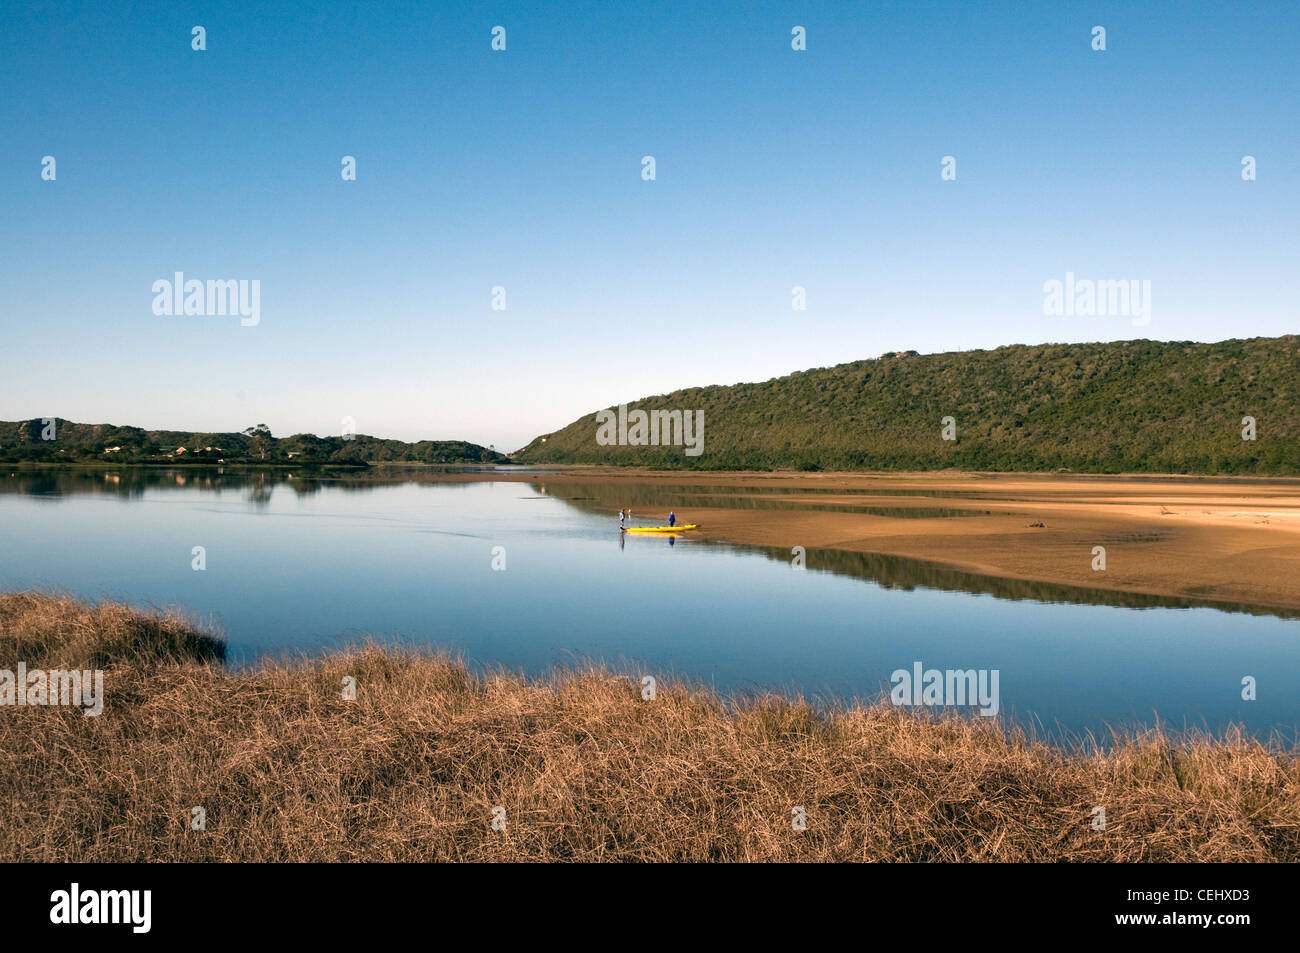 Canoe on water,Sedgefield,Garden Route,Western Cape Province - Stock Image